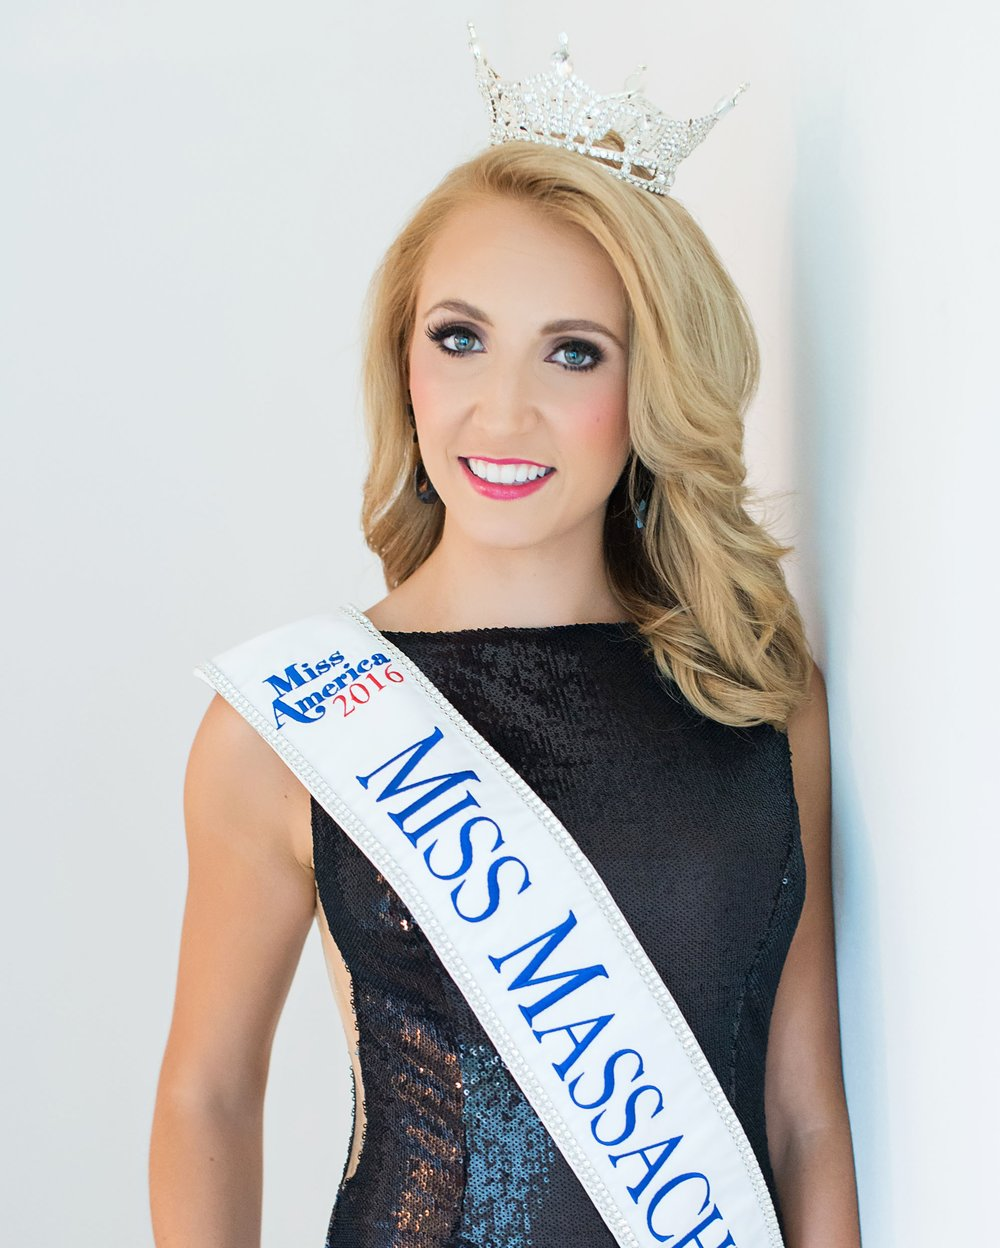 Photo cred: Miss Massachusetts Organization